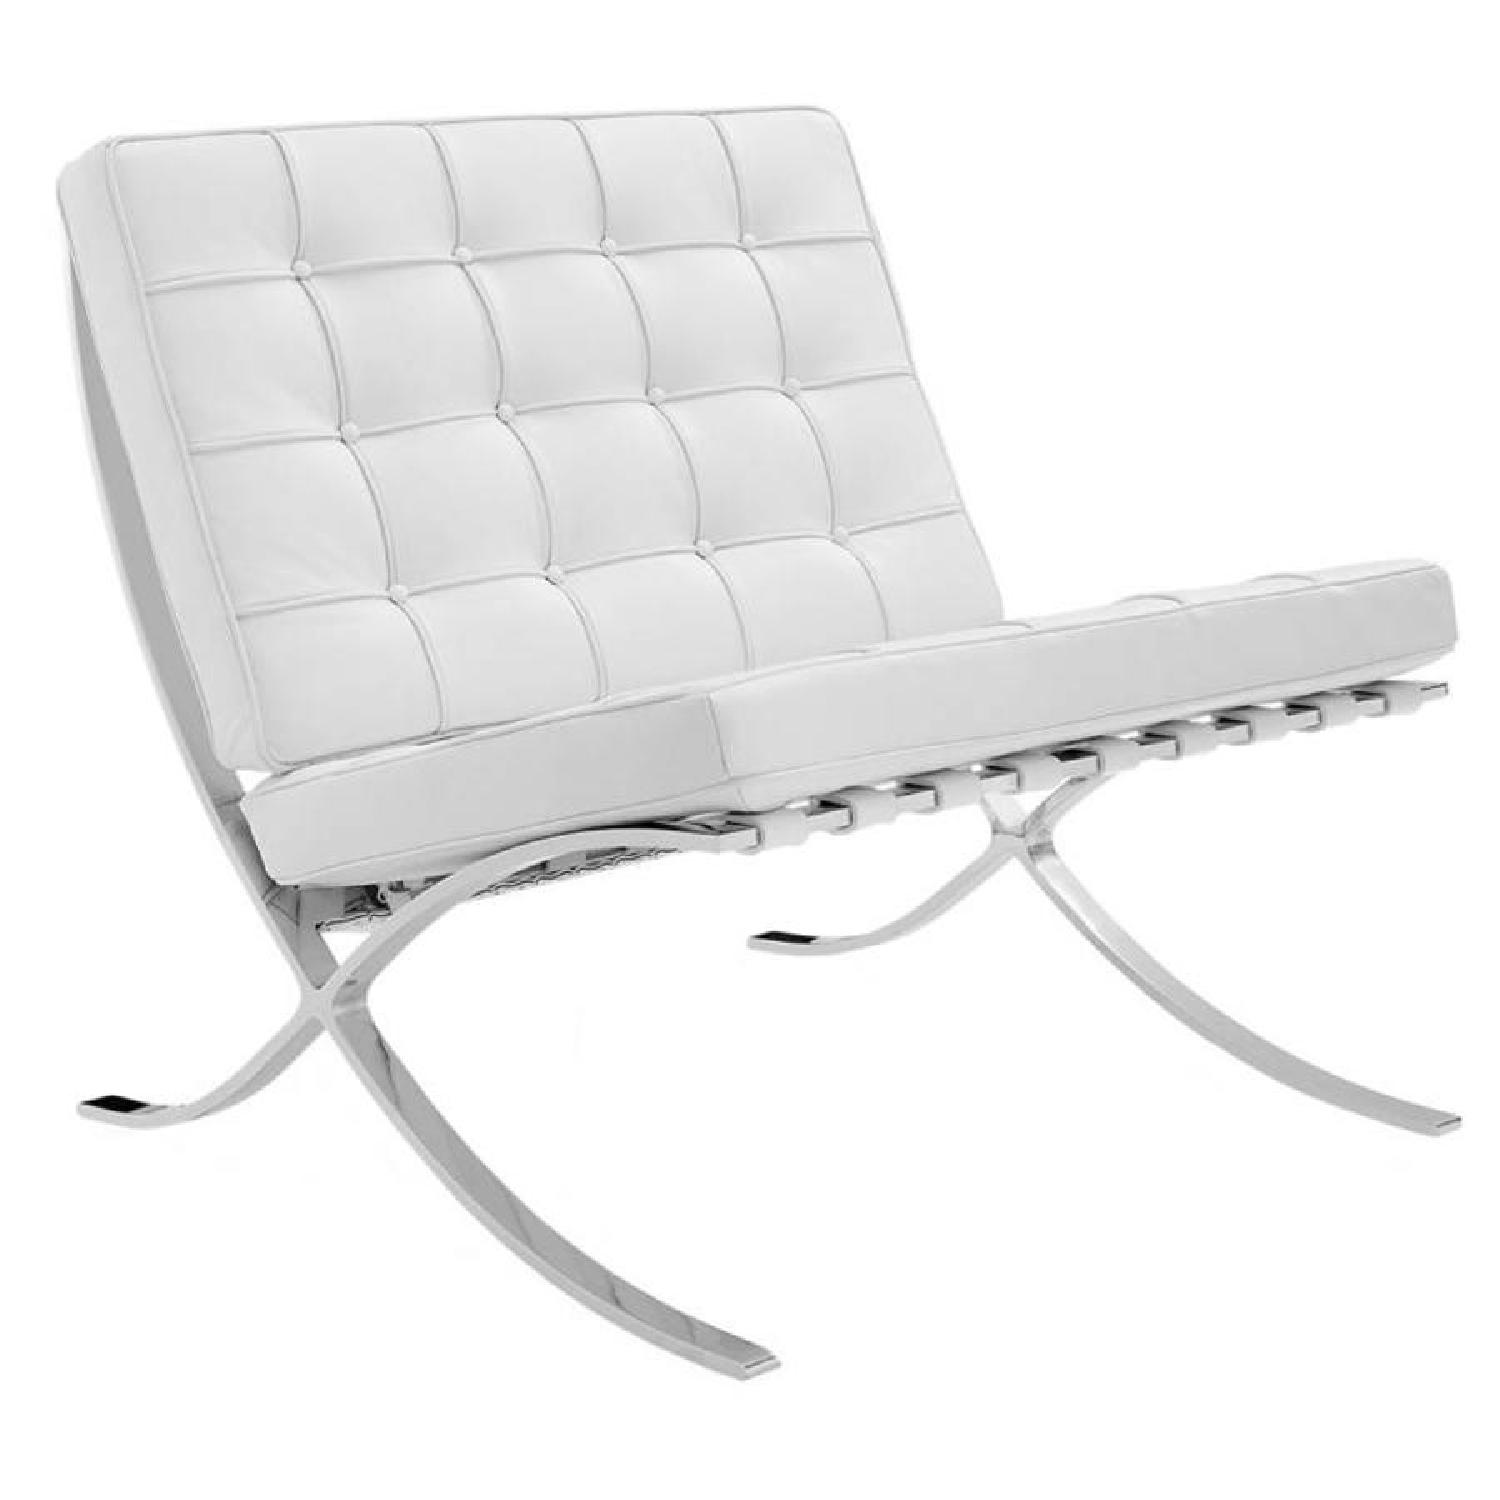 White Leather Barcelona Replica Chairs - image-0